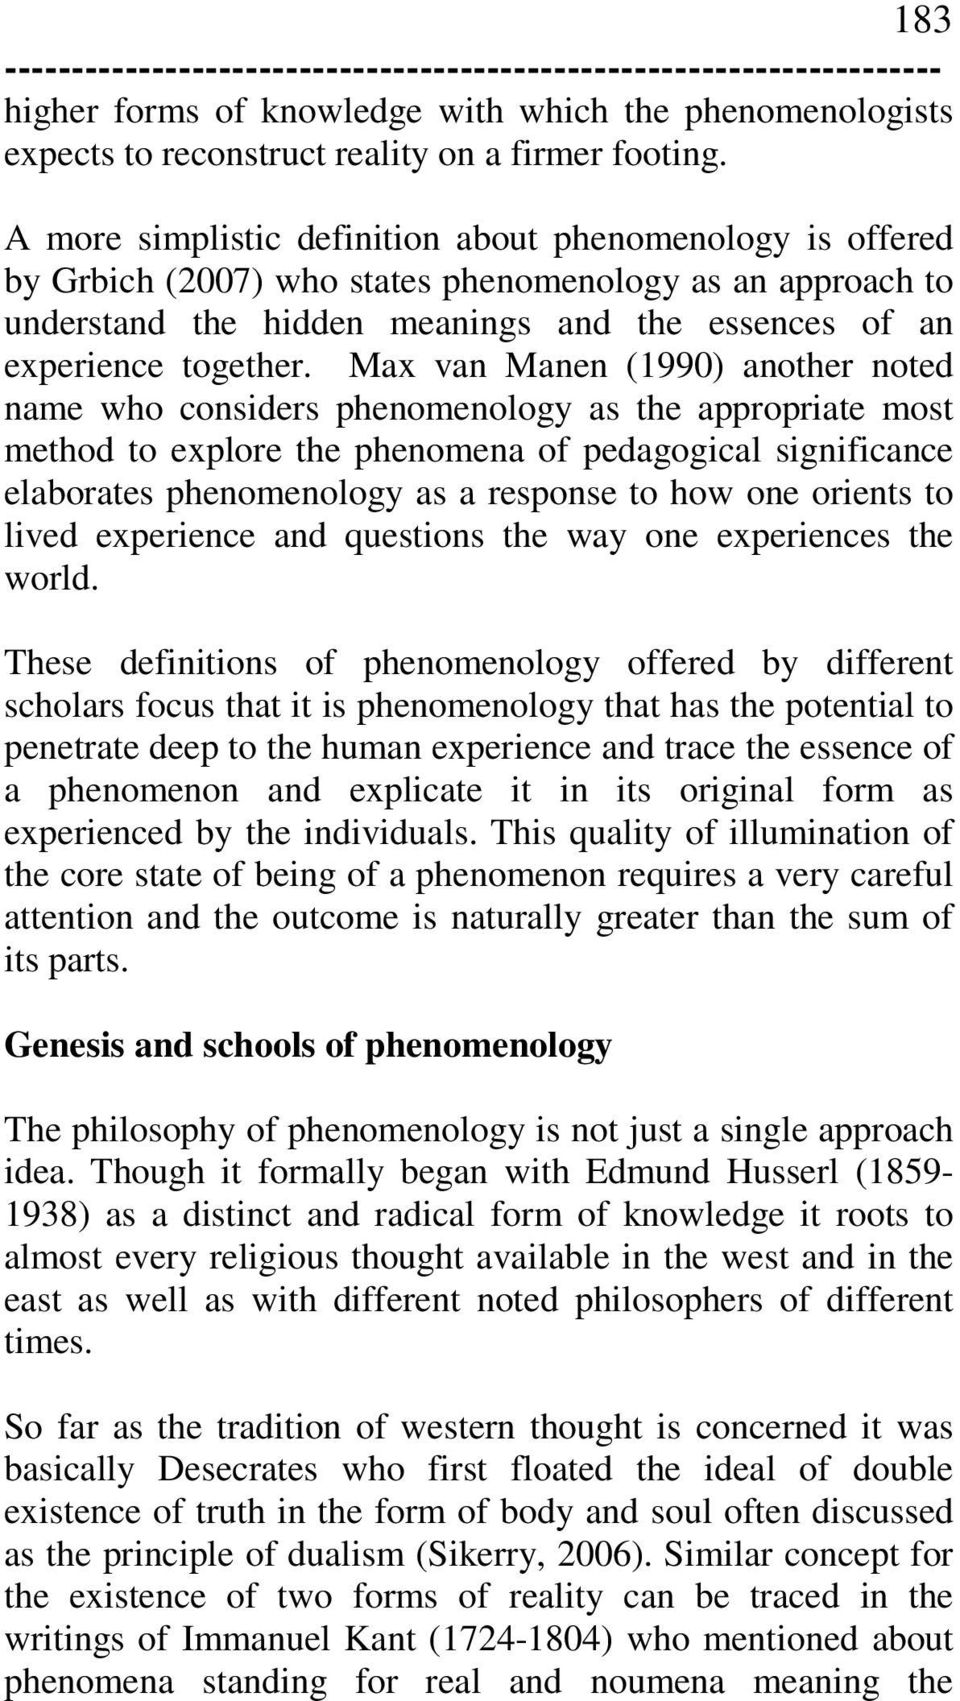 hermeneutic phenomenology thesis Hermeneutic phenomenology is in line with this empirical direction hermeneutical phenomenology, as described by van manen (1990), is a means to combine hermeneutics with phenomenology, and is thus both interpretive and.